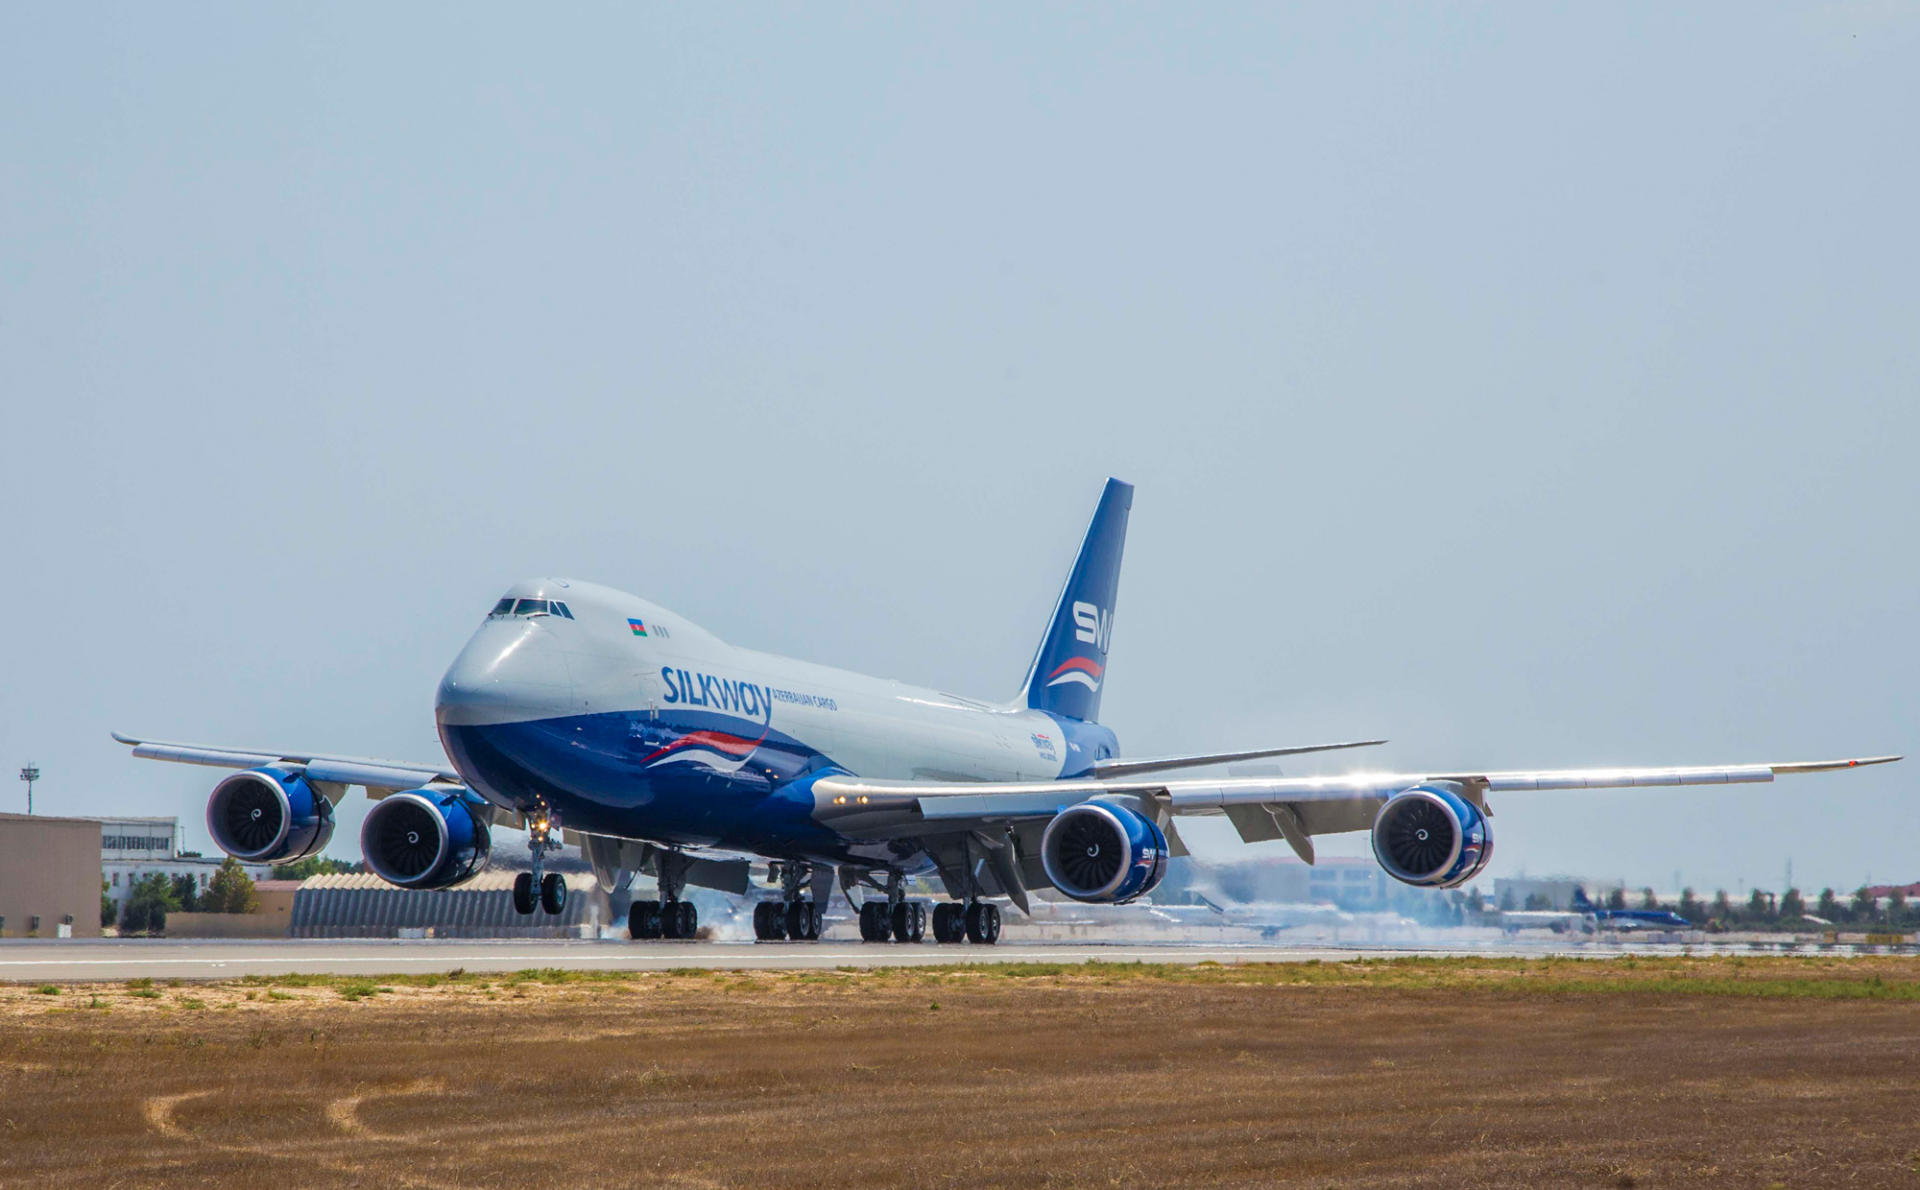 Silk Way Airlines Expands Fleet With Another Boeing 747 8f